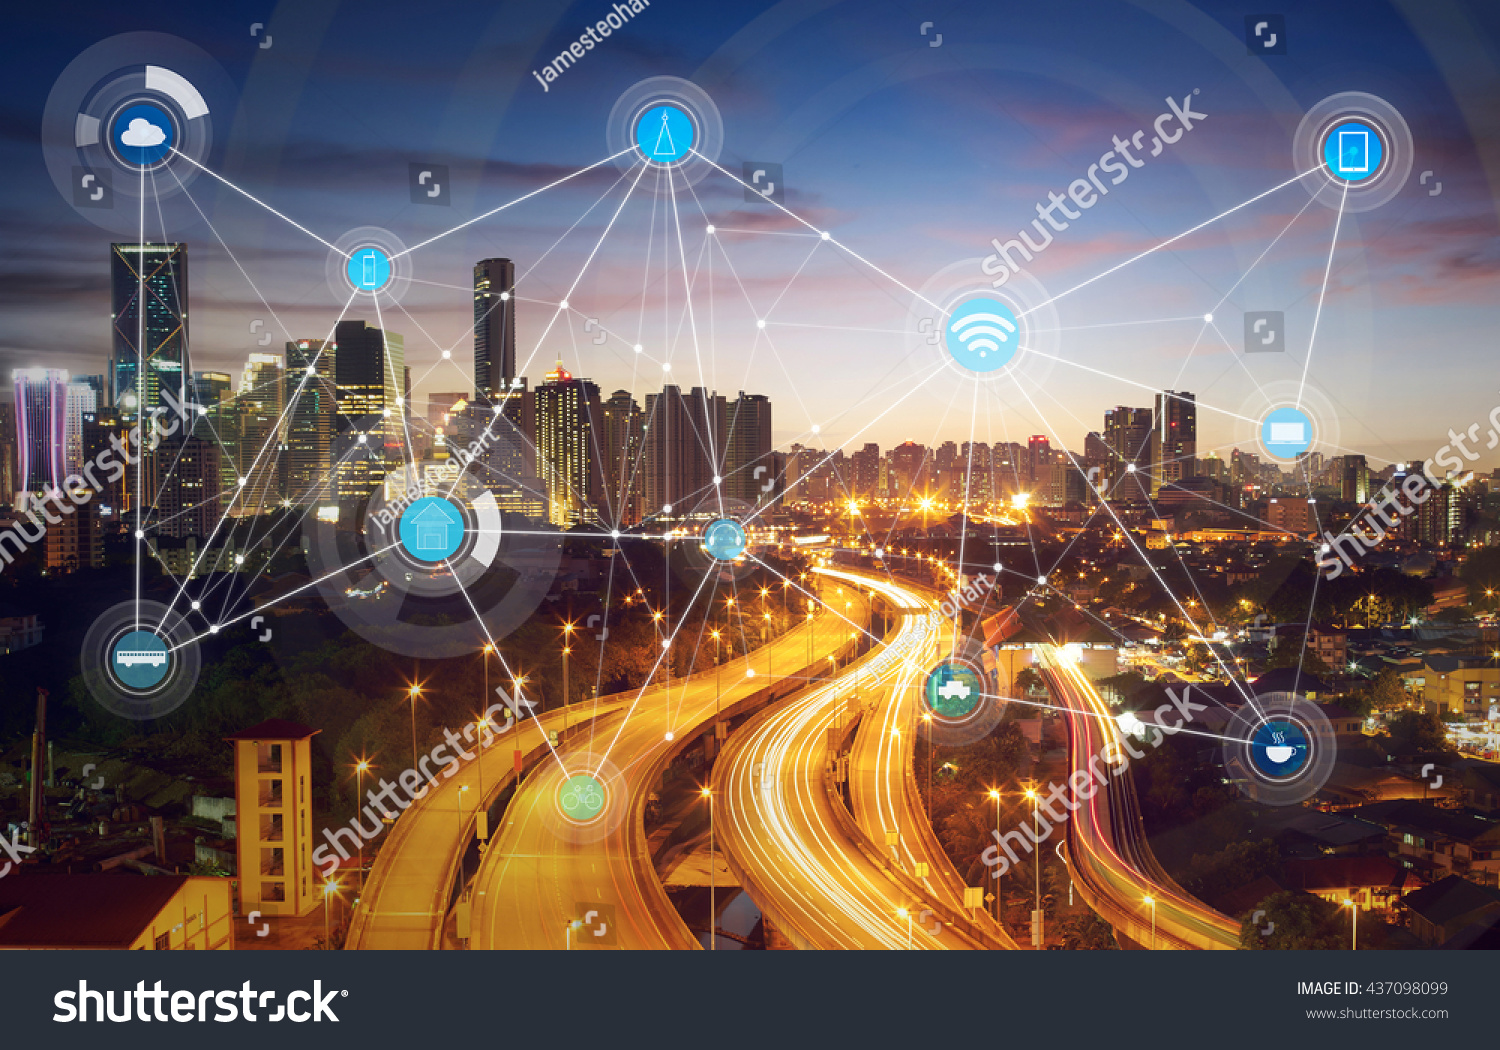 stock photo smart city and wireless communication network abstract image visual internet of things 437098099 - asdasd